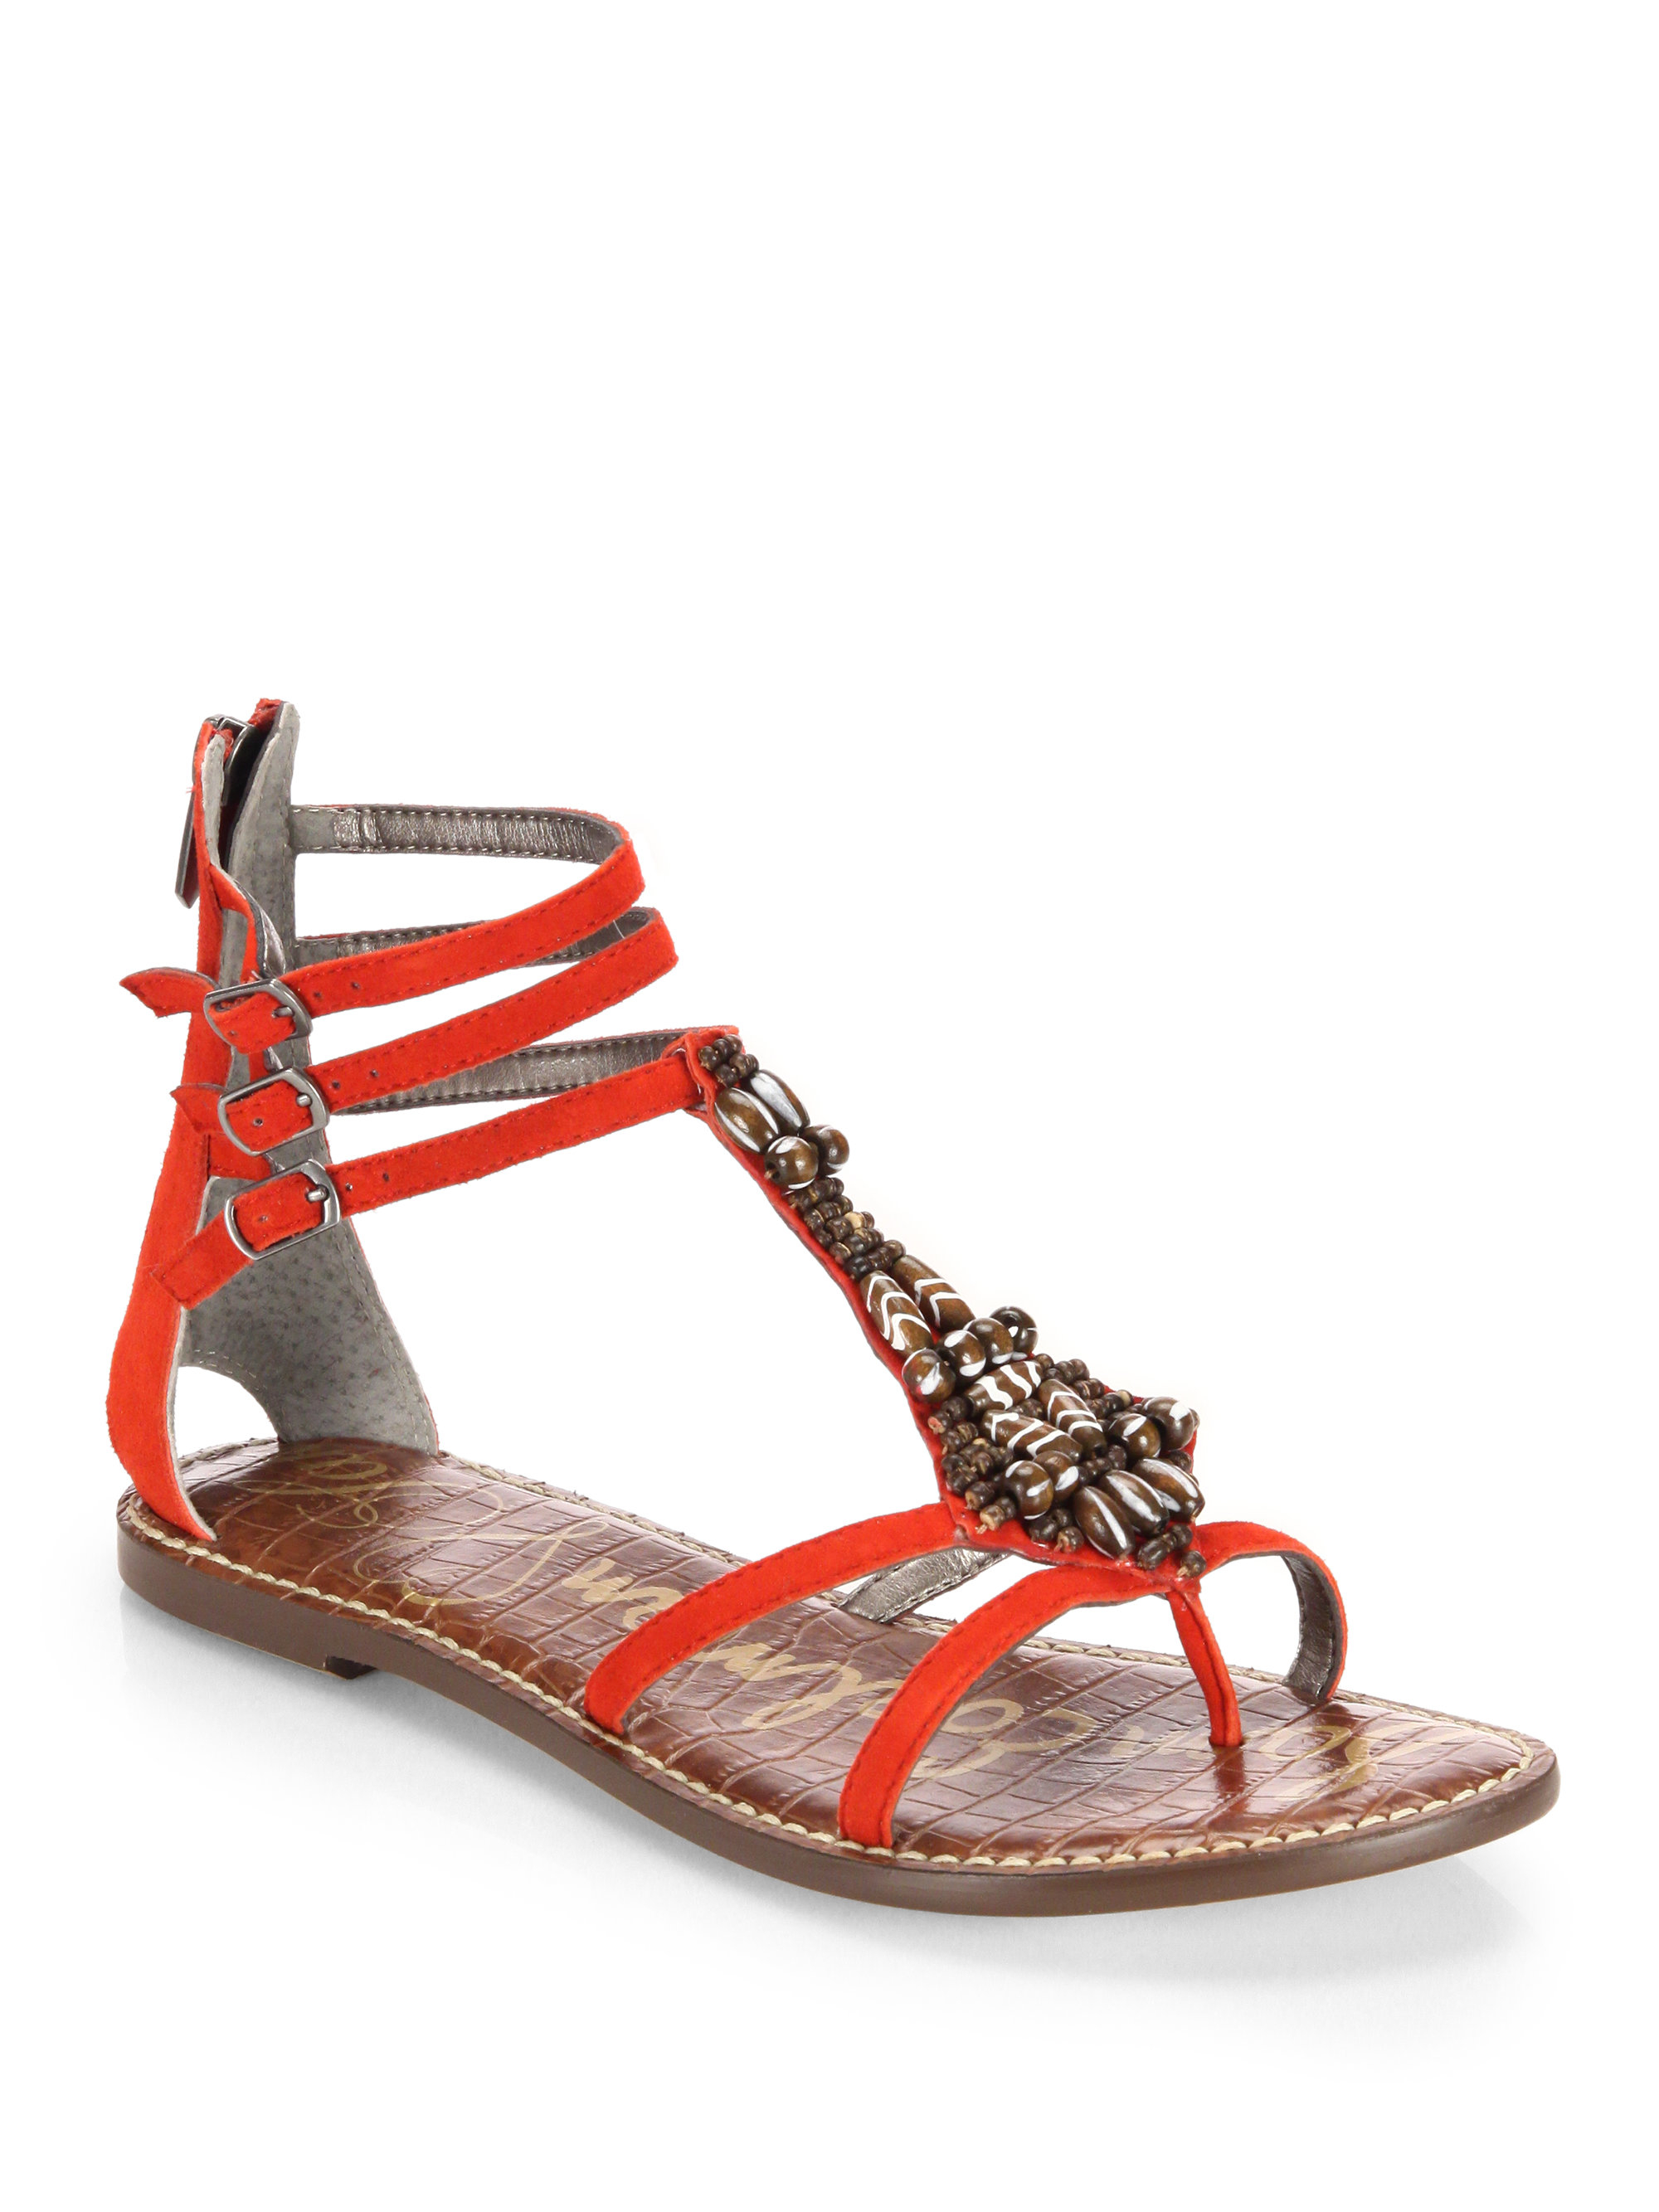 Lyst Sam Edelman Giada Beaded Leather Sandals In Red